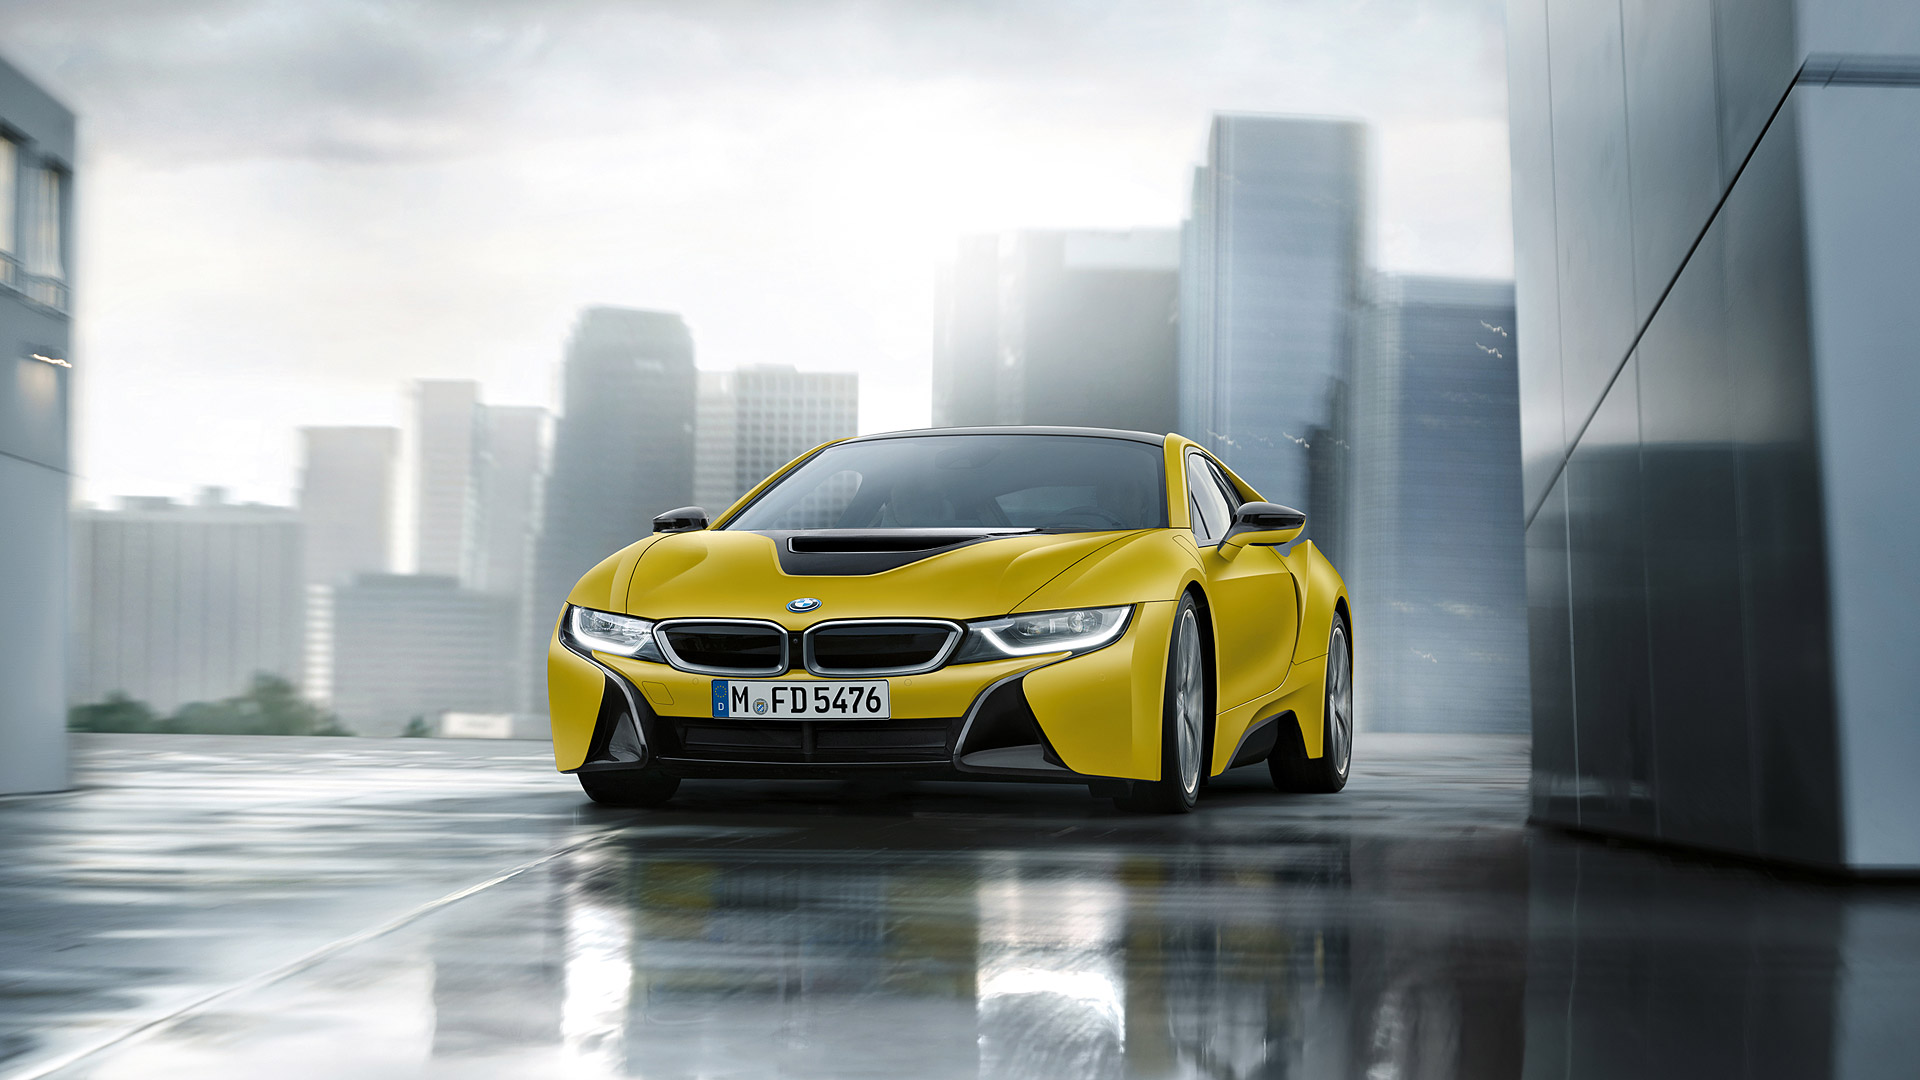 2018 BMW I8 Coupe Wallpapers Wallpapers - All Superior 2018 BMW I8 Coupe  Wallpapers Backgrounds - WallpapersPlanet.net